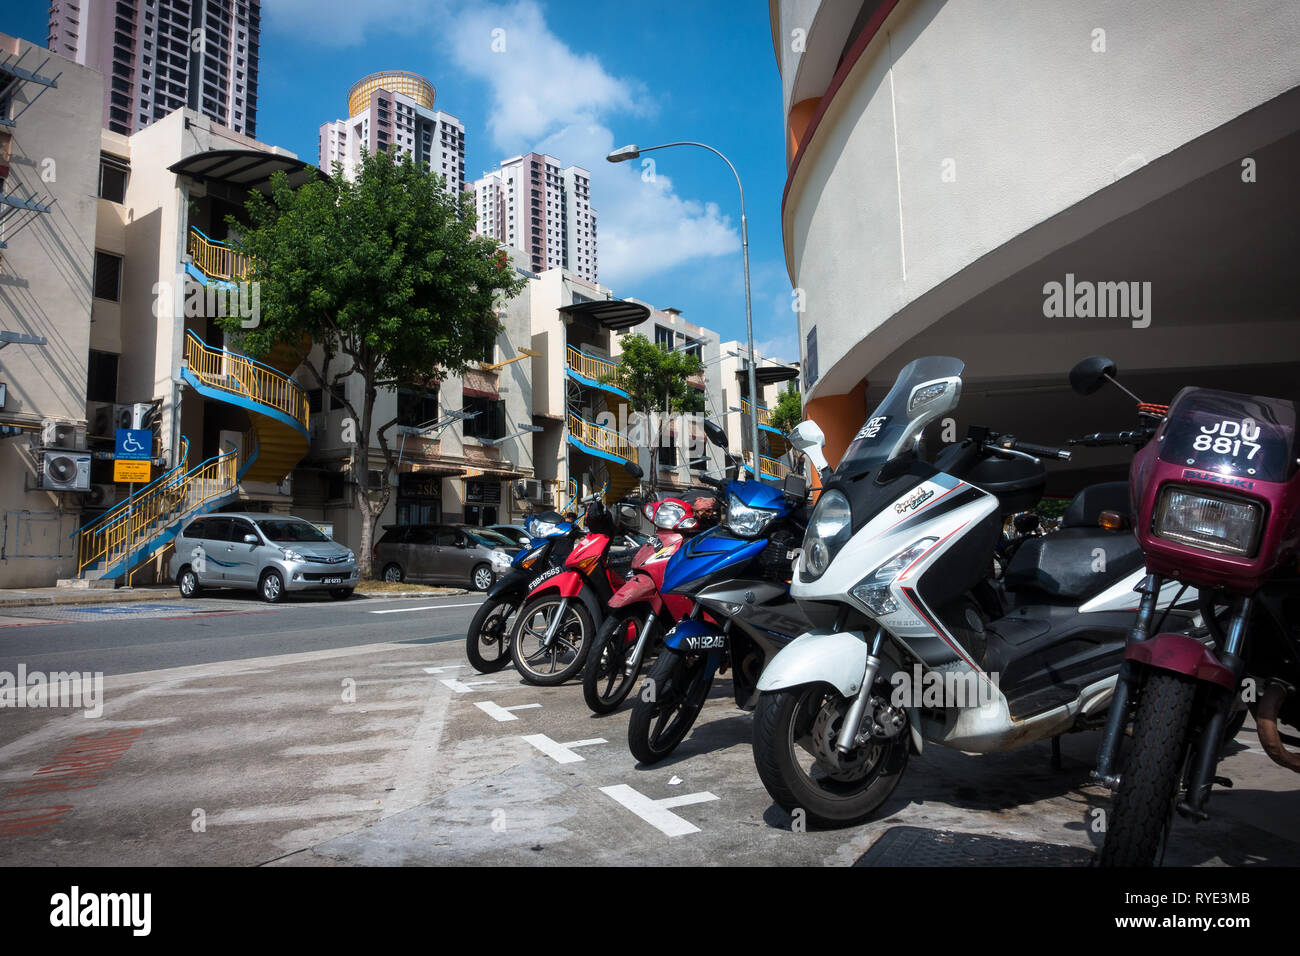 Scooters and Motorcycles parked at outdoor Toa Payoh Residences - Singapore - Stock Image